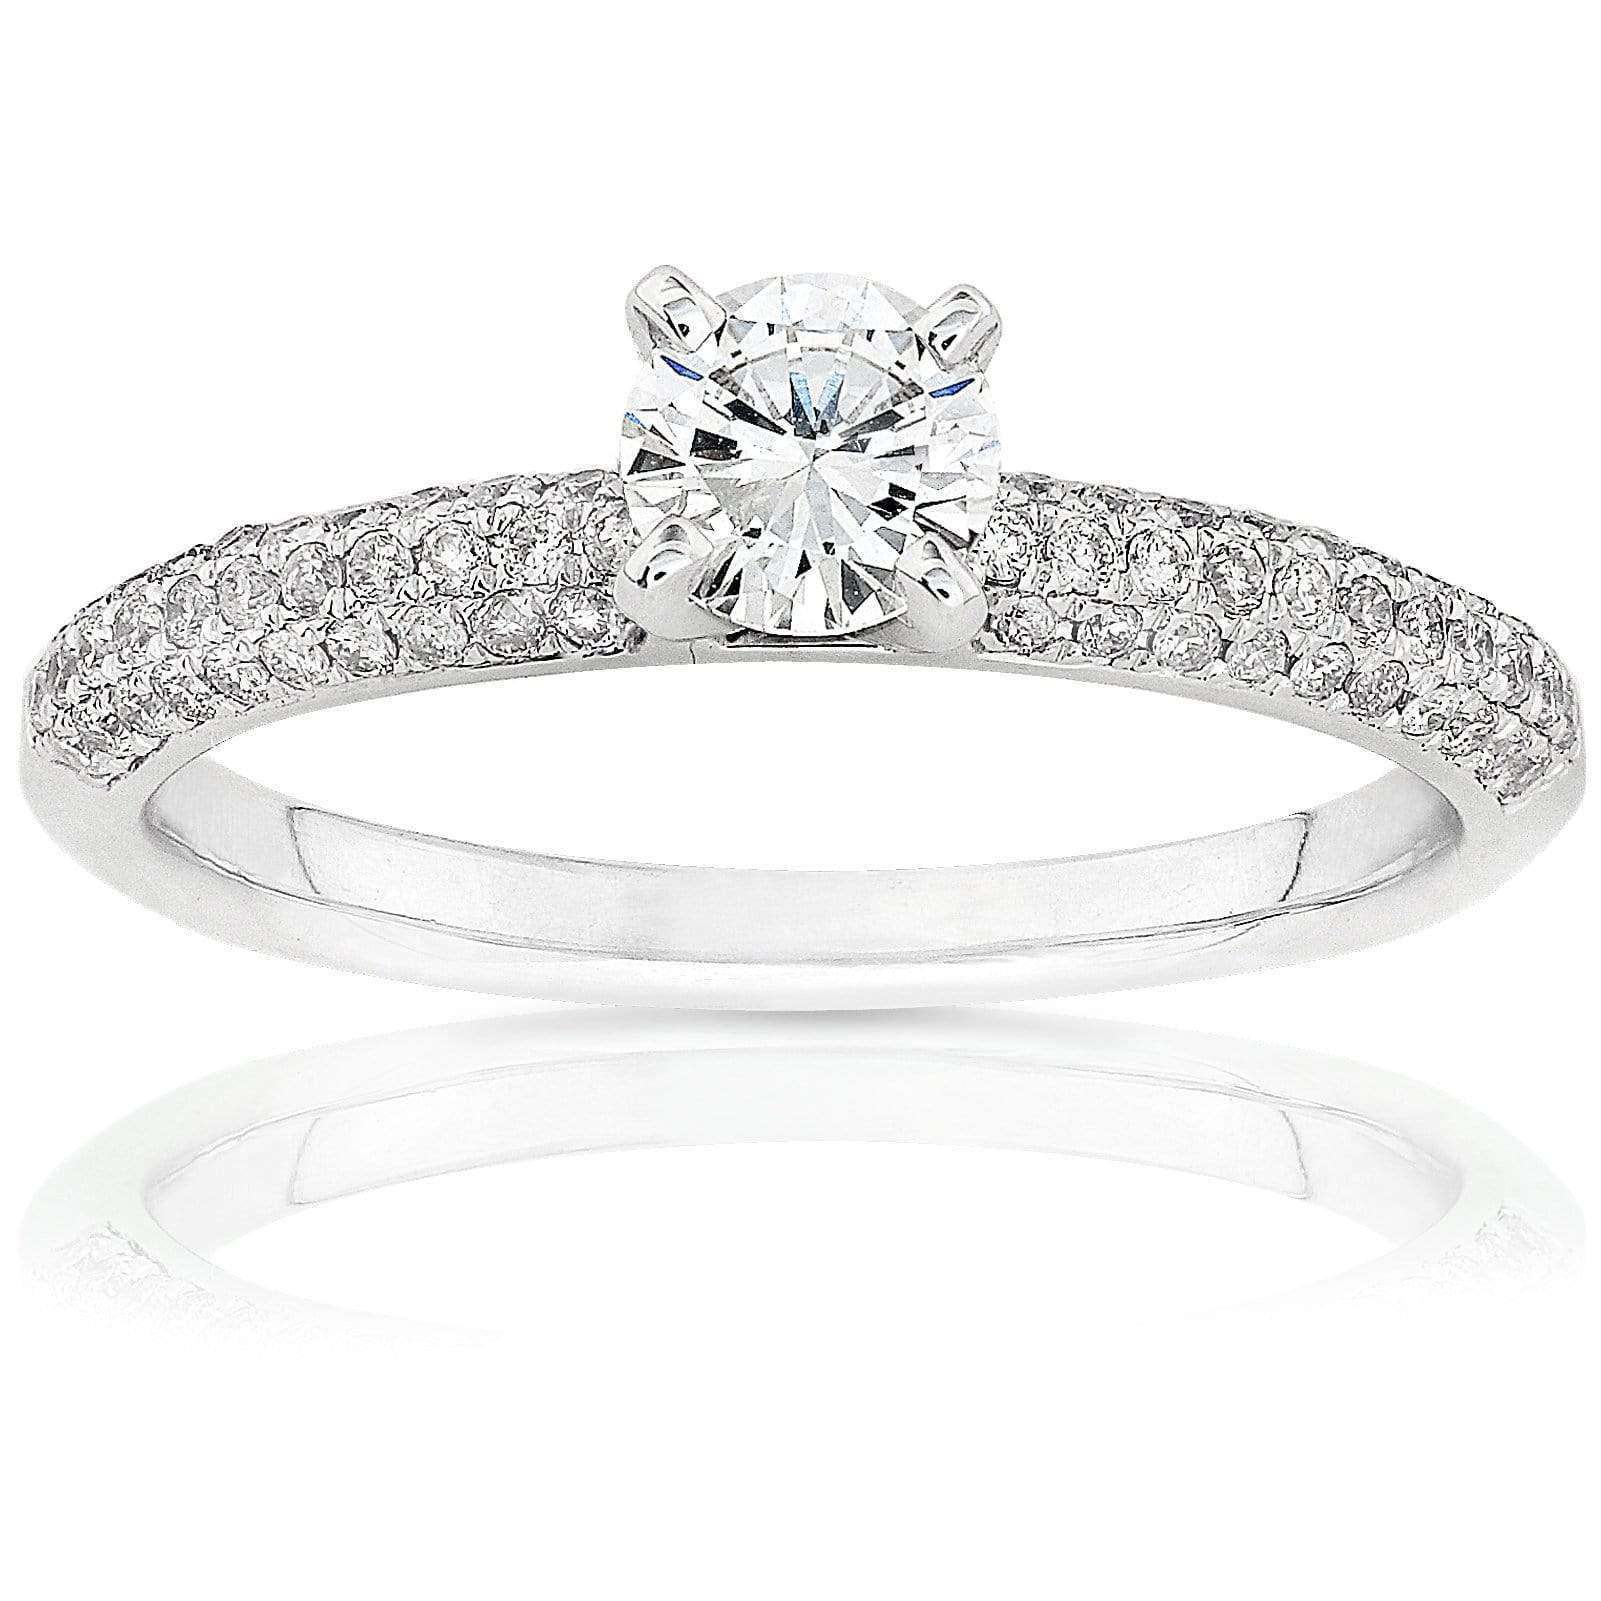 Coupons Round-Brilliant Diamond Engagement Ring 3/4 Carat (ctw) in 14K White Gold - 8